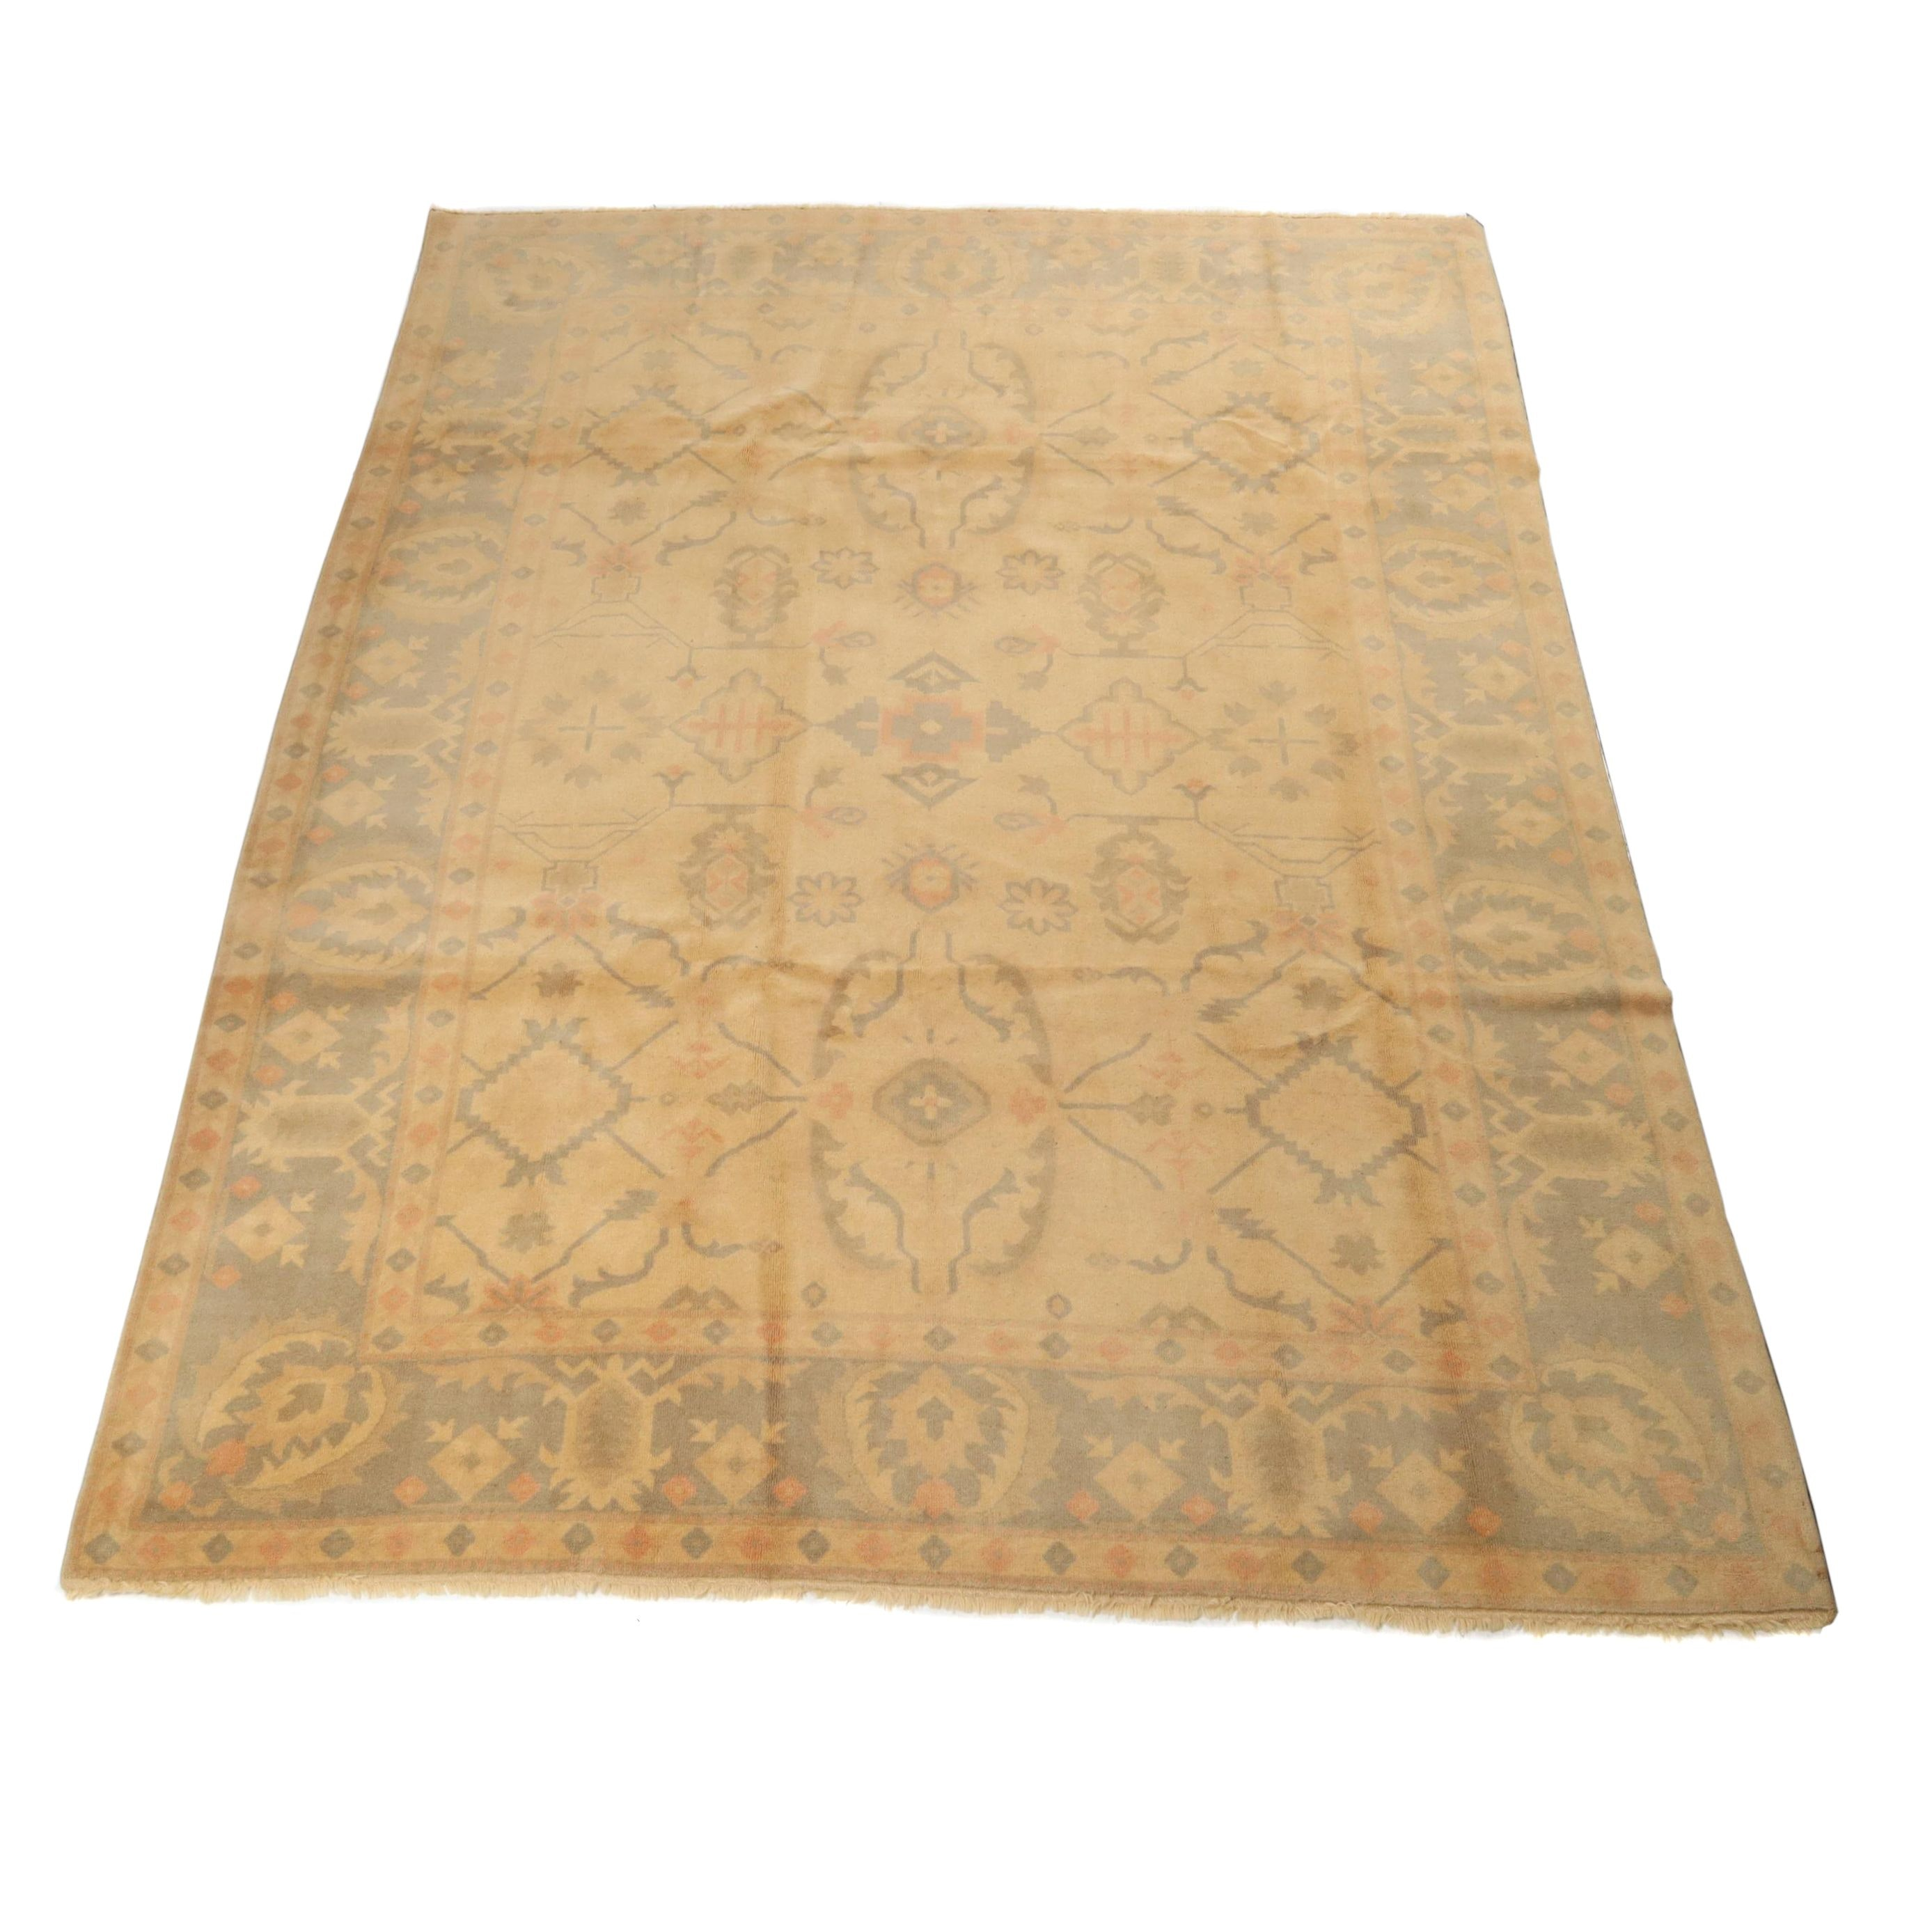 8' x 10.4' Hand-Knotted Turkish Oushak Rug, Circa 1980